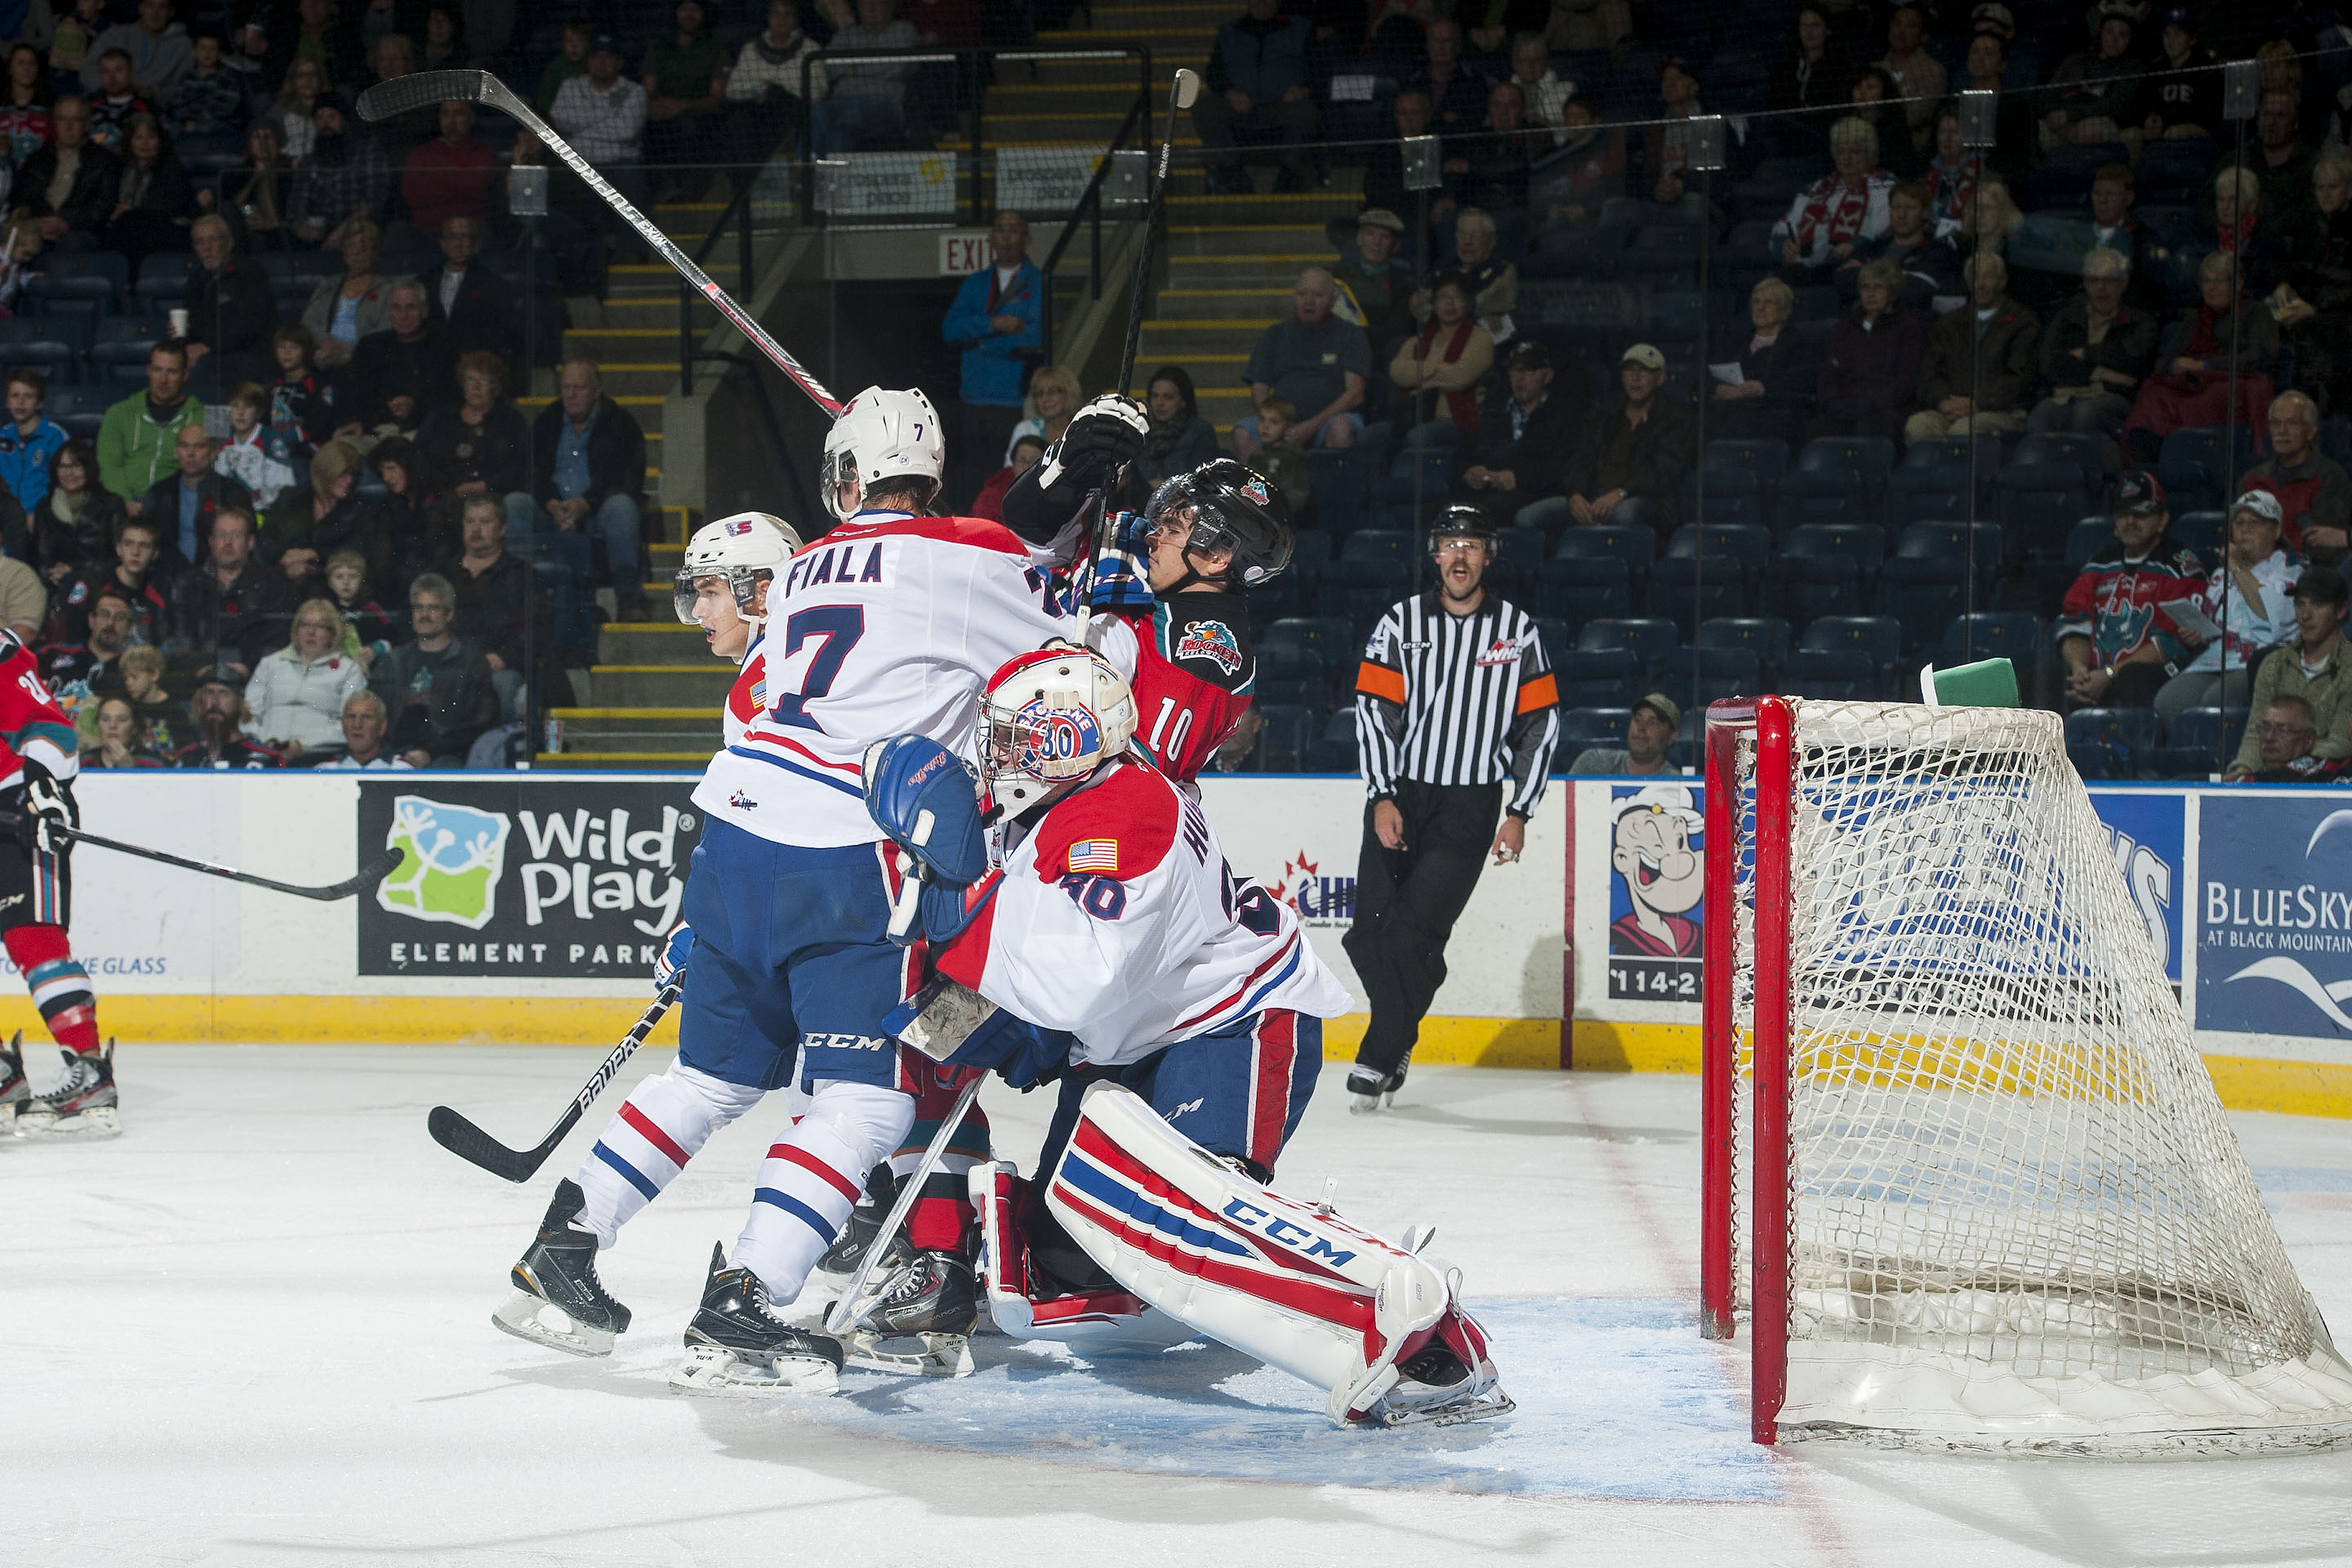 Evan Fiala dropped the mitts in Saturday's loss to Victoria.